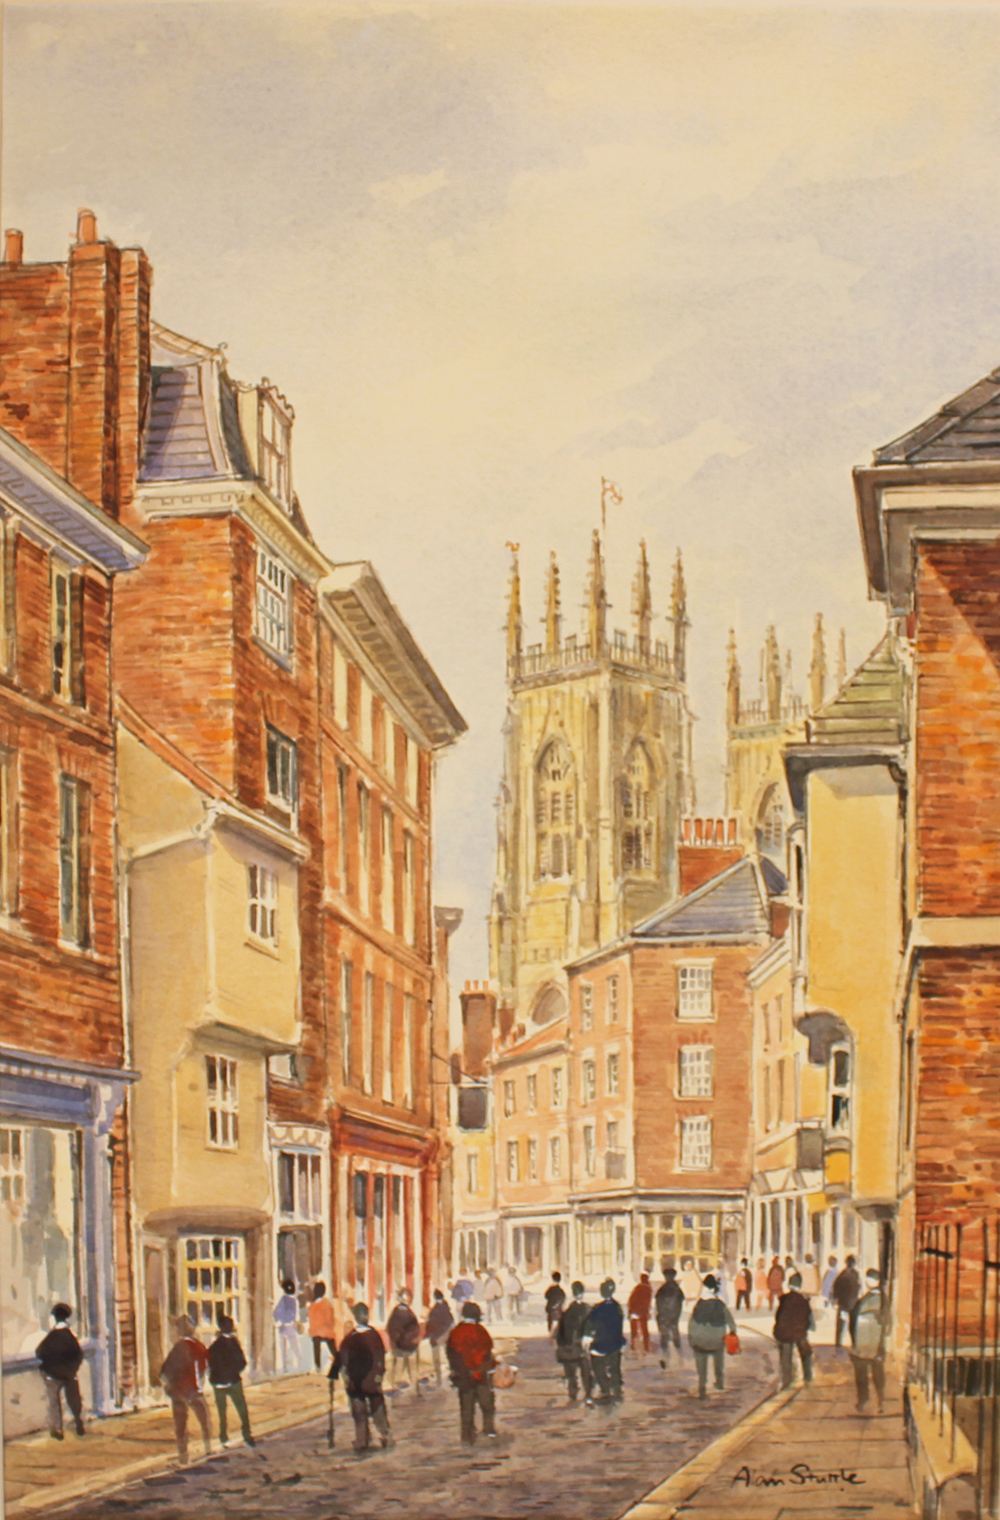 Alan Stuttle, Watercolour, York Minster, from Petergate, click to enlarge